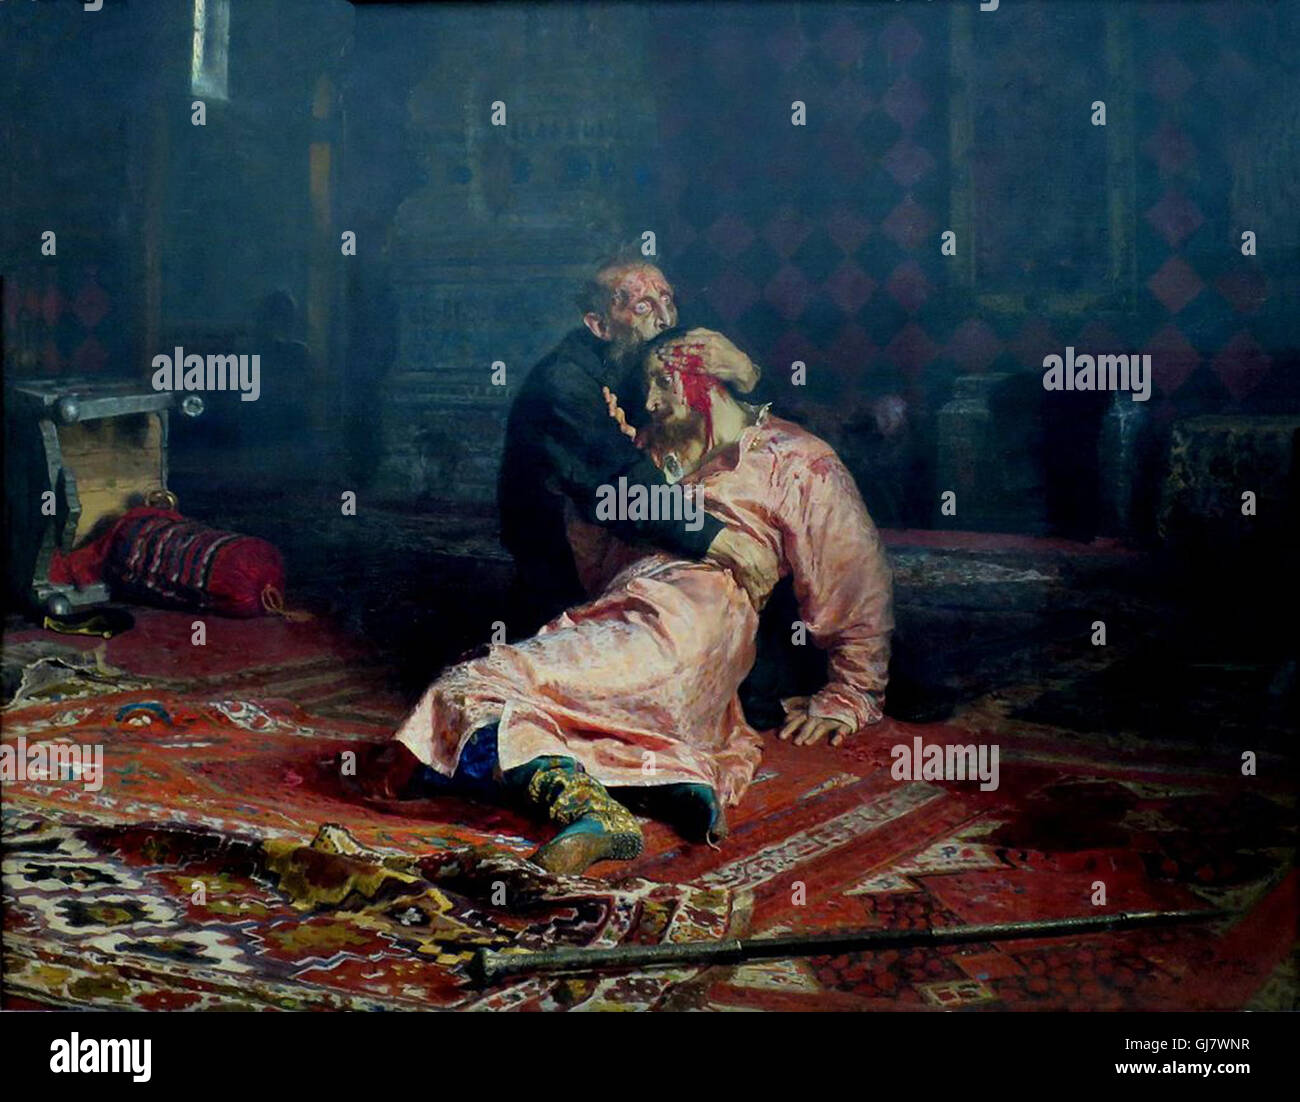 Ivan the Terrible And His Son Ivan, 16 November 1581 by Ilya Repin, 1885.   Ivan IV Vasilyevich 1530 – 1584), commonly - Stock Image